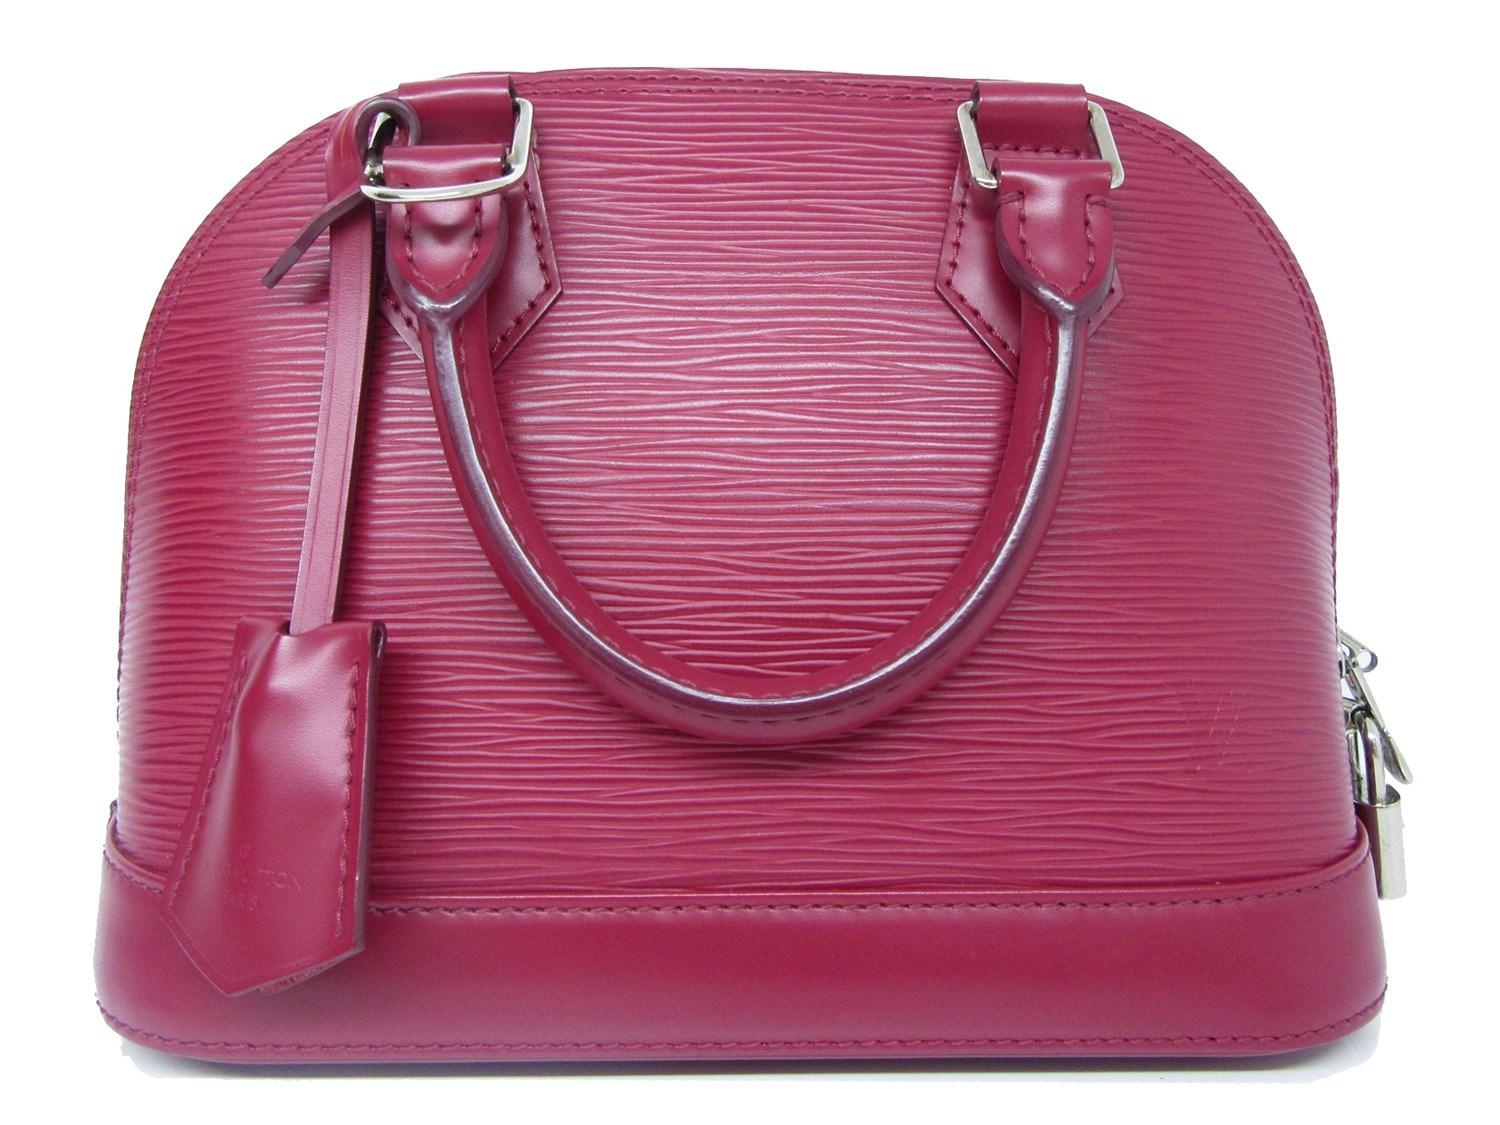 defa3b4405d7 Lyst - Louis Vuitton Epi Alma Bb Hand Shoulder Bag Fuchsia M40851 in ...